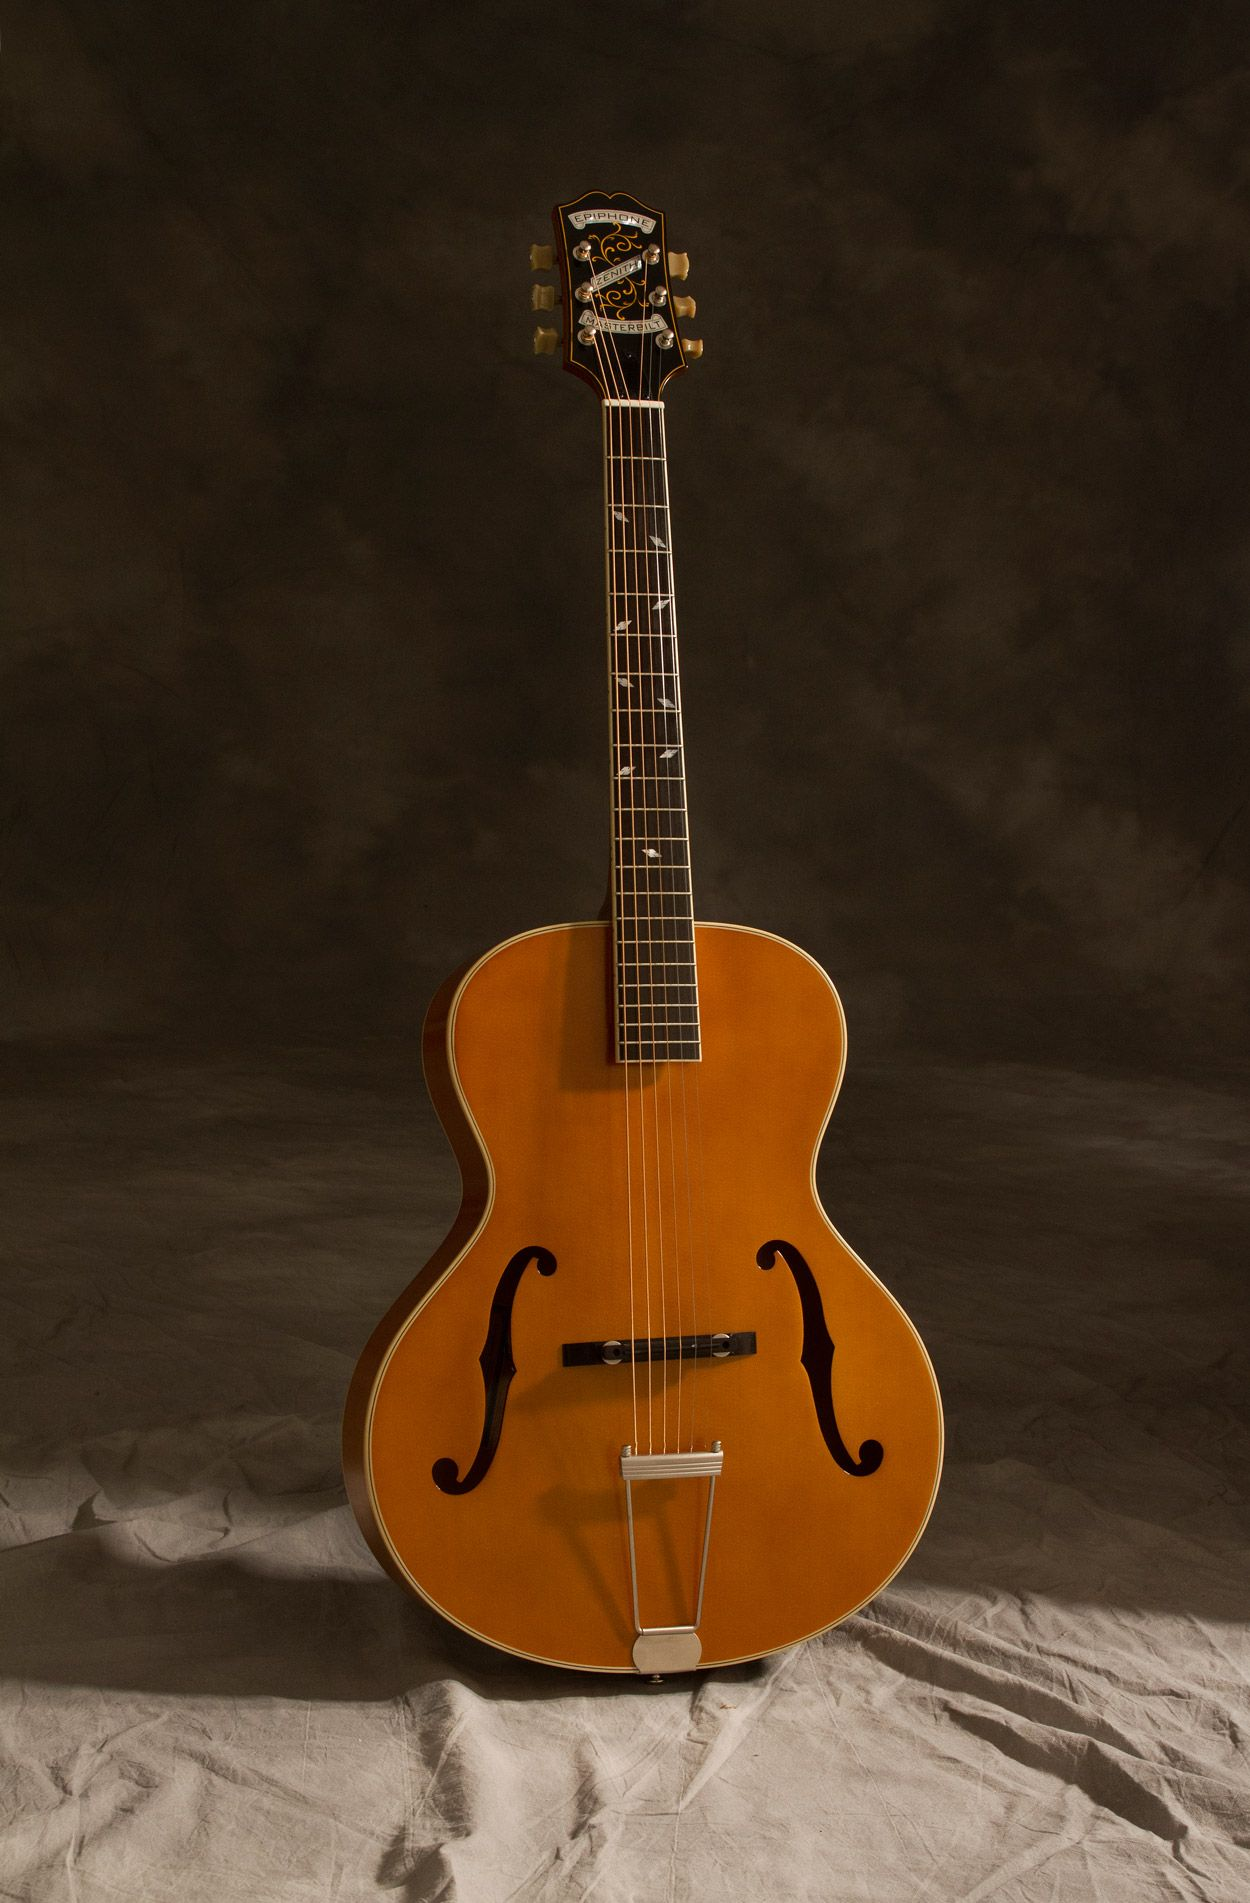 1933 Epiphone Zenith And Olympic Vintage Guitars Acoustic Epiphone Vintage Guitars